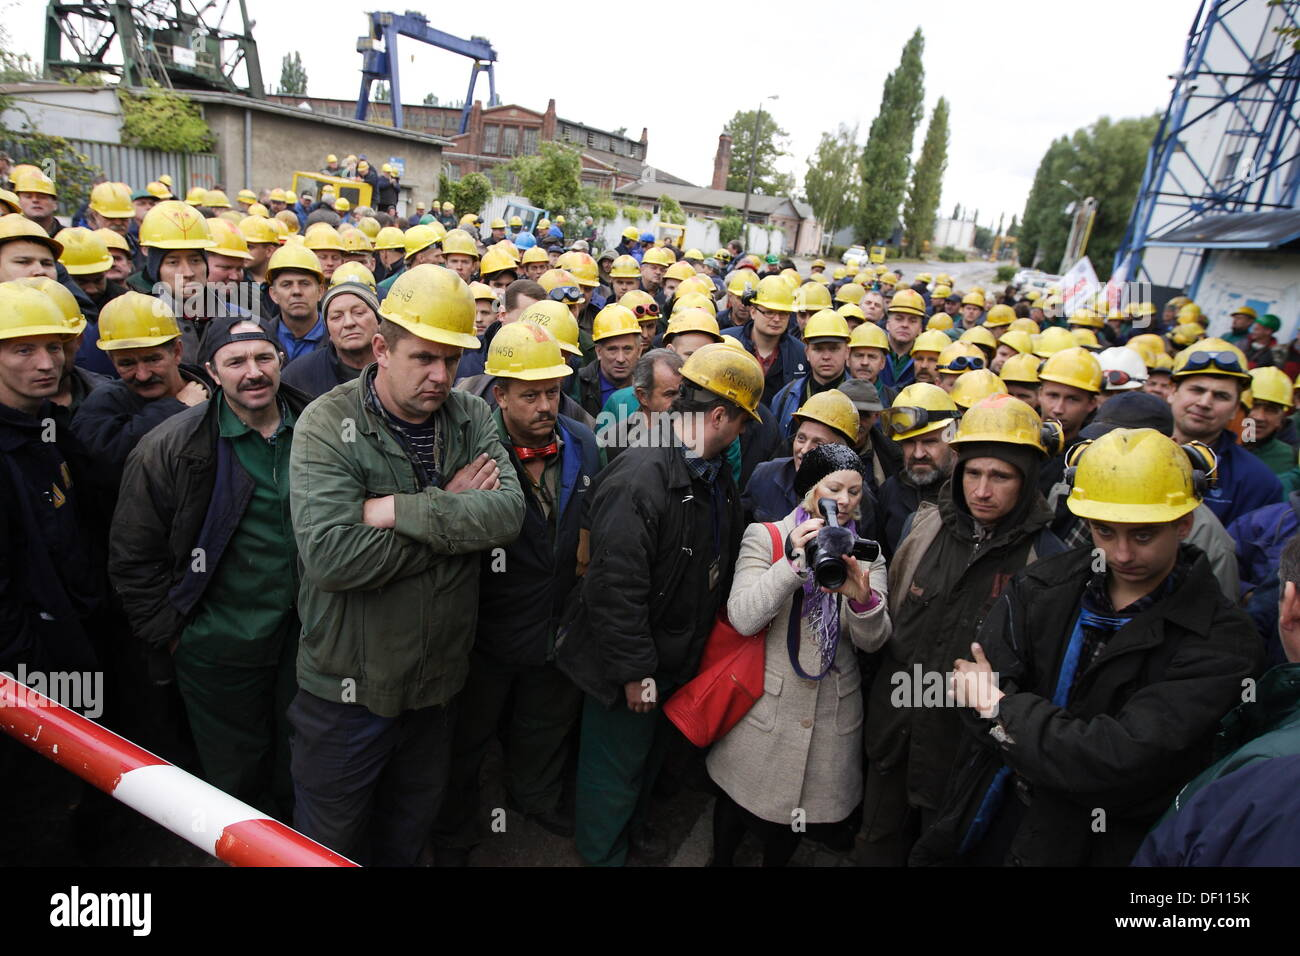 Gdansk, Poland 26th September 2013 Shipyard workers from